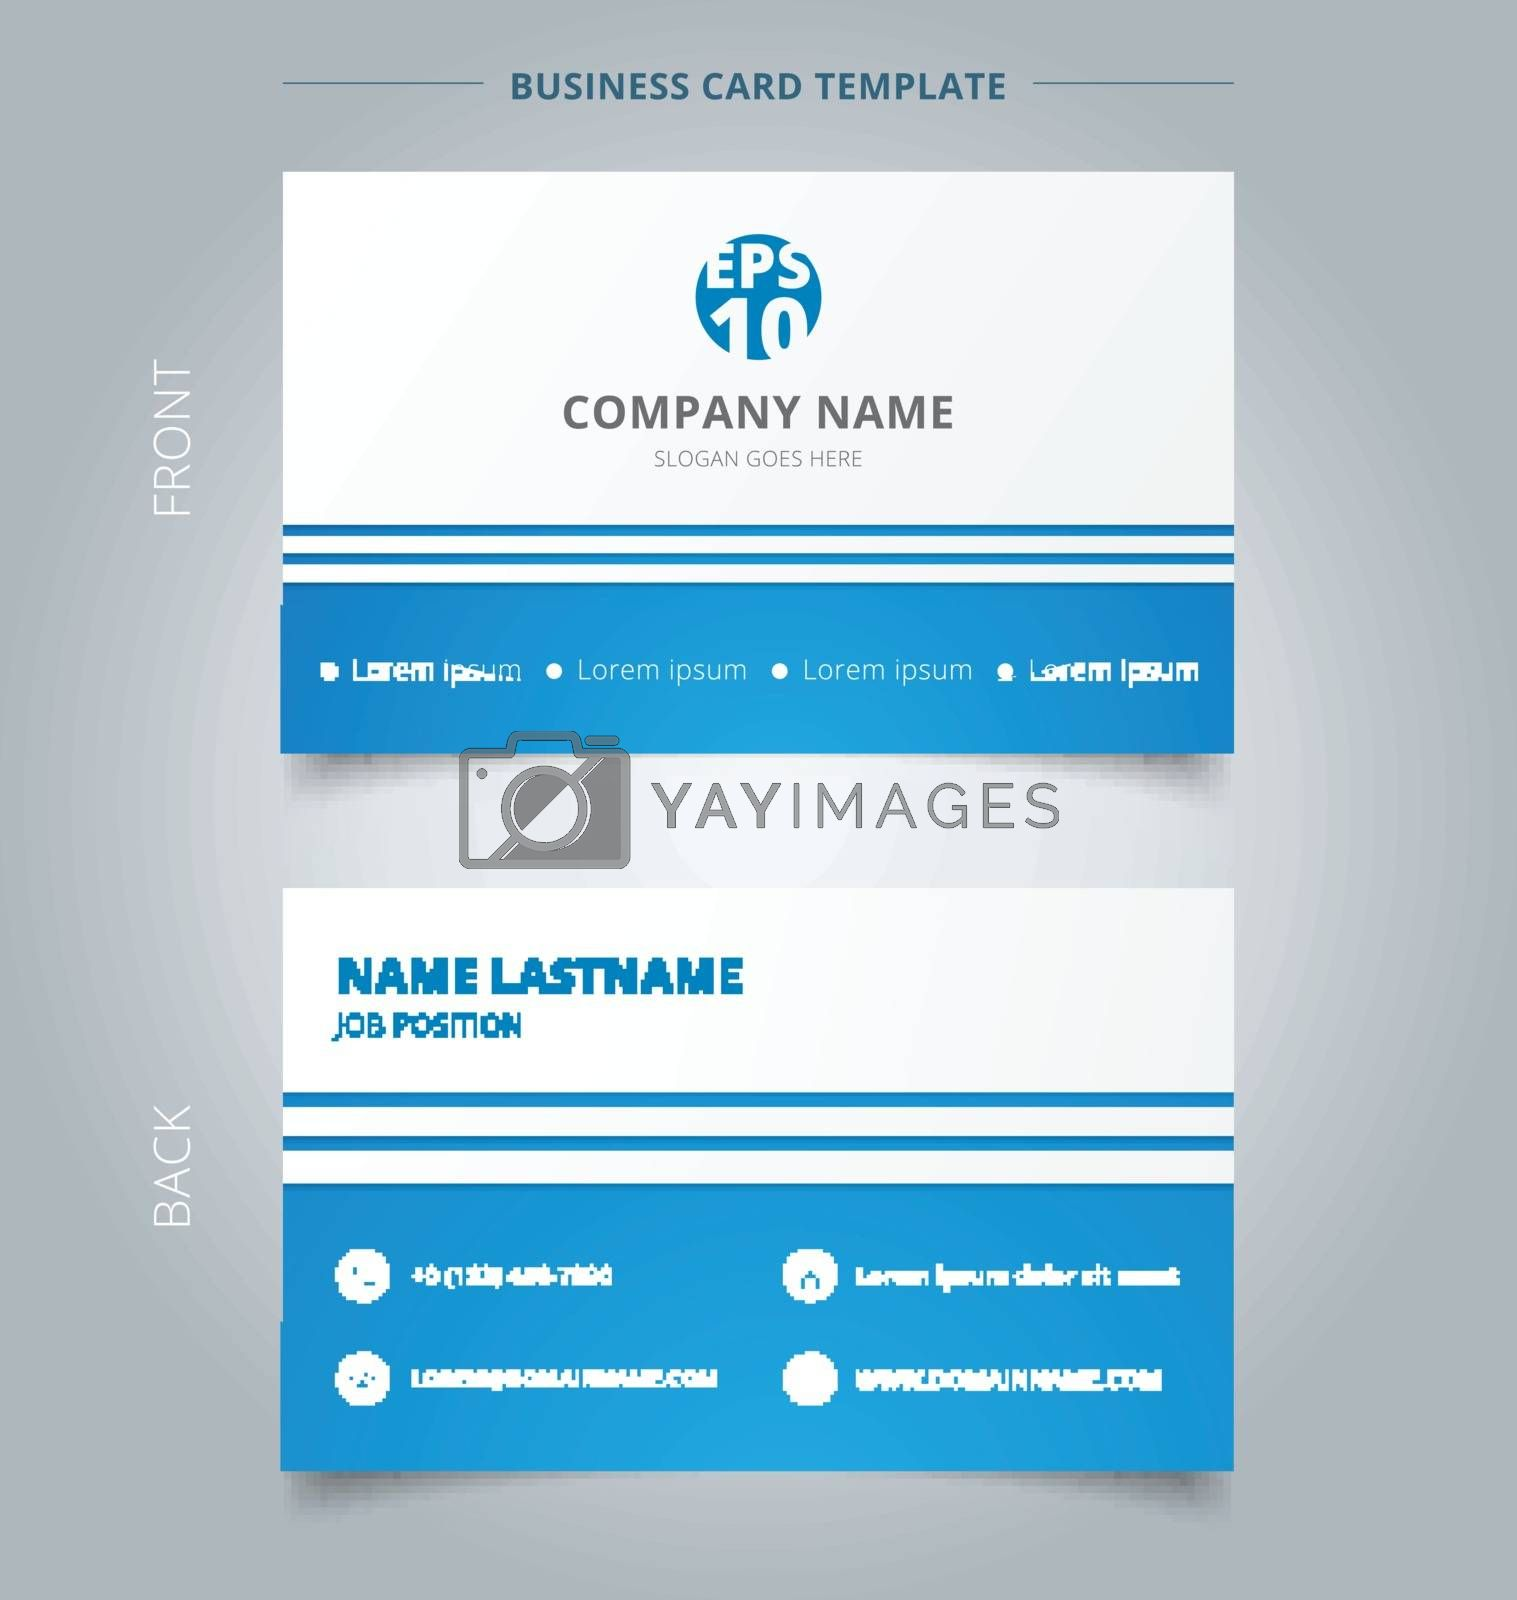 Creative business card and name card template blue and white with lines horizontal. Abstract concept and commercial design. vector graphic illustration